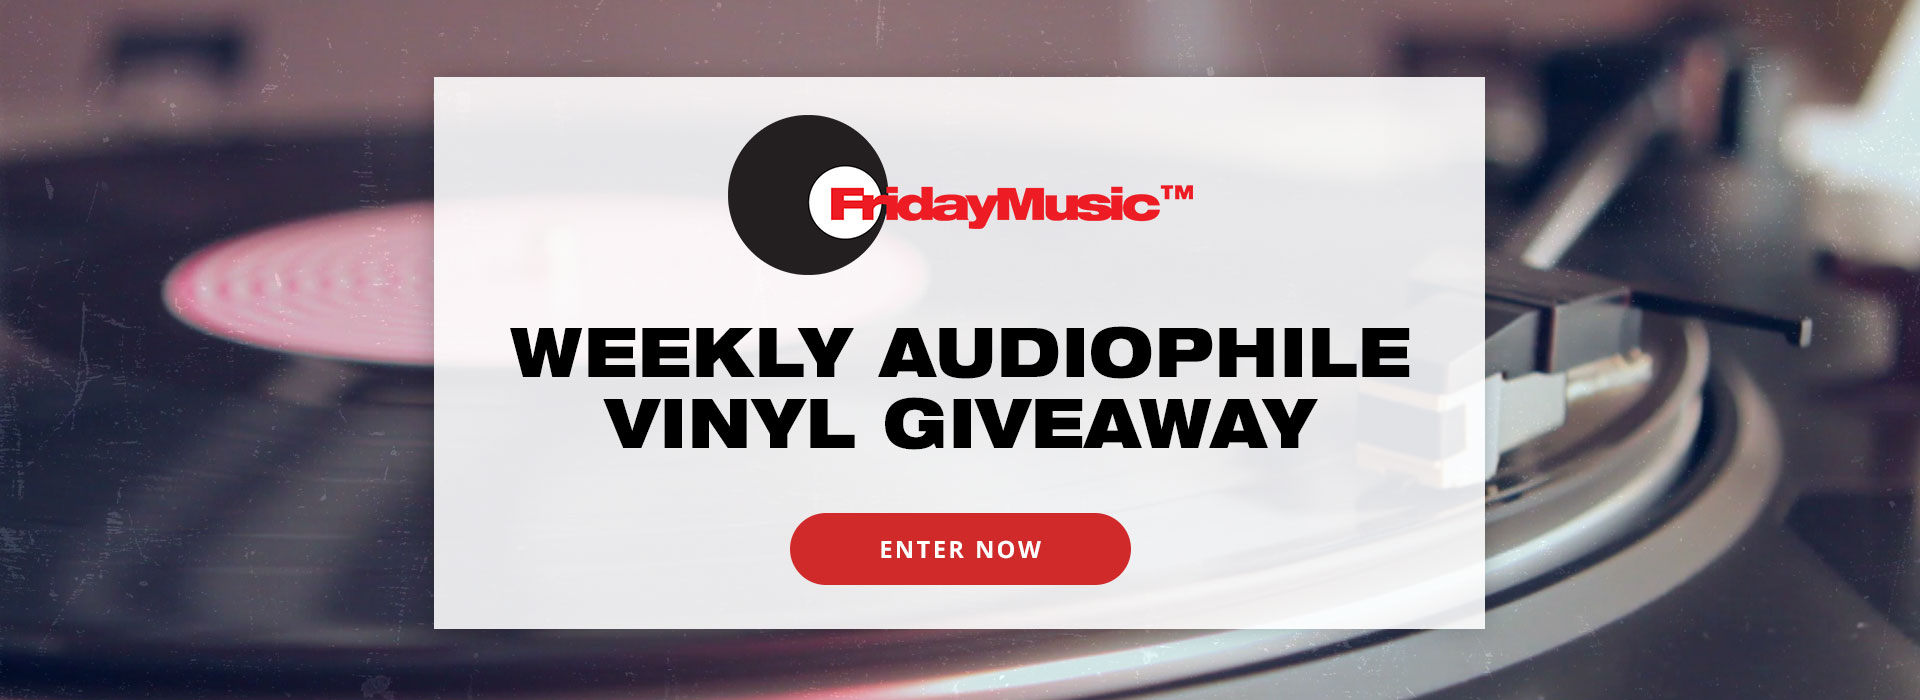 Enter The Friday Music Weekly Audiophile Giveaway!